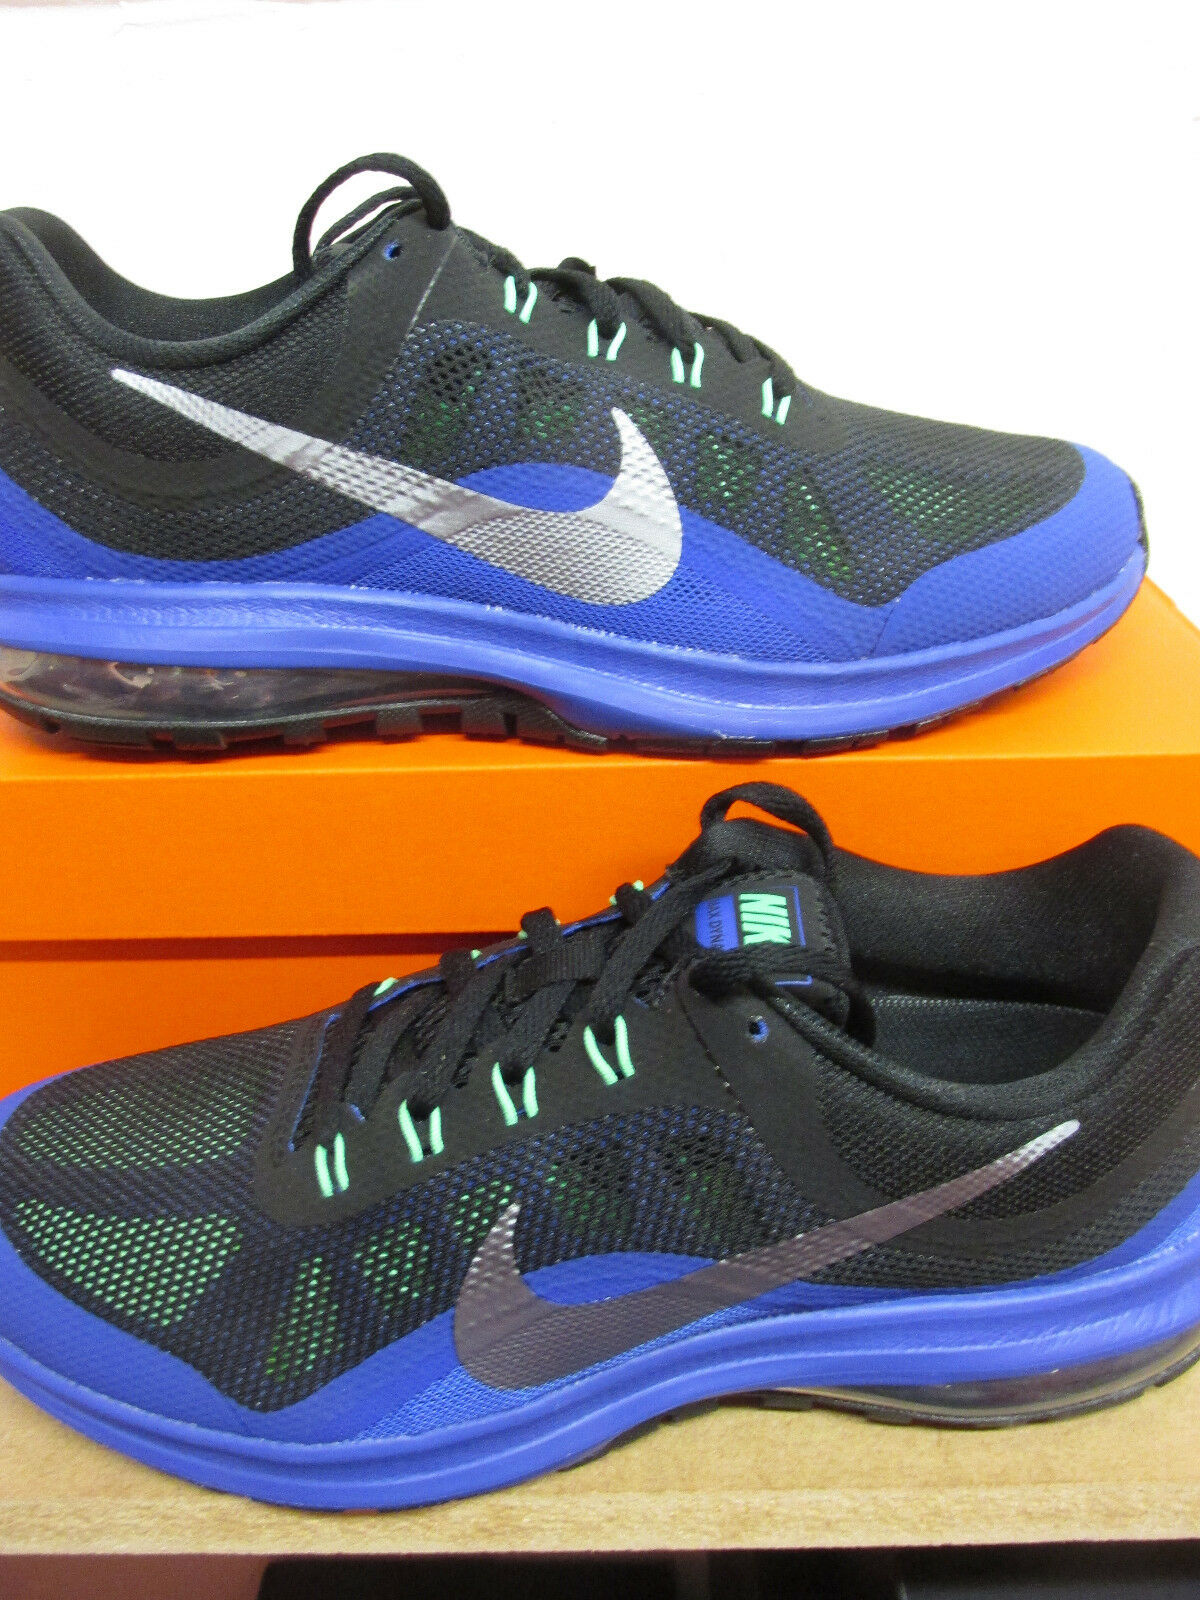 Nike Air Max Dynasty 2 Hommes Running Running Running Trainers 852430 007 Baskets Chaussures 7088a0